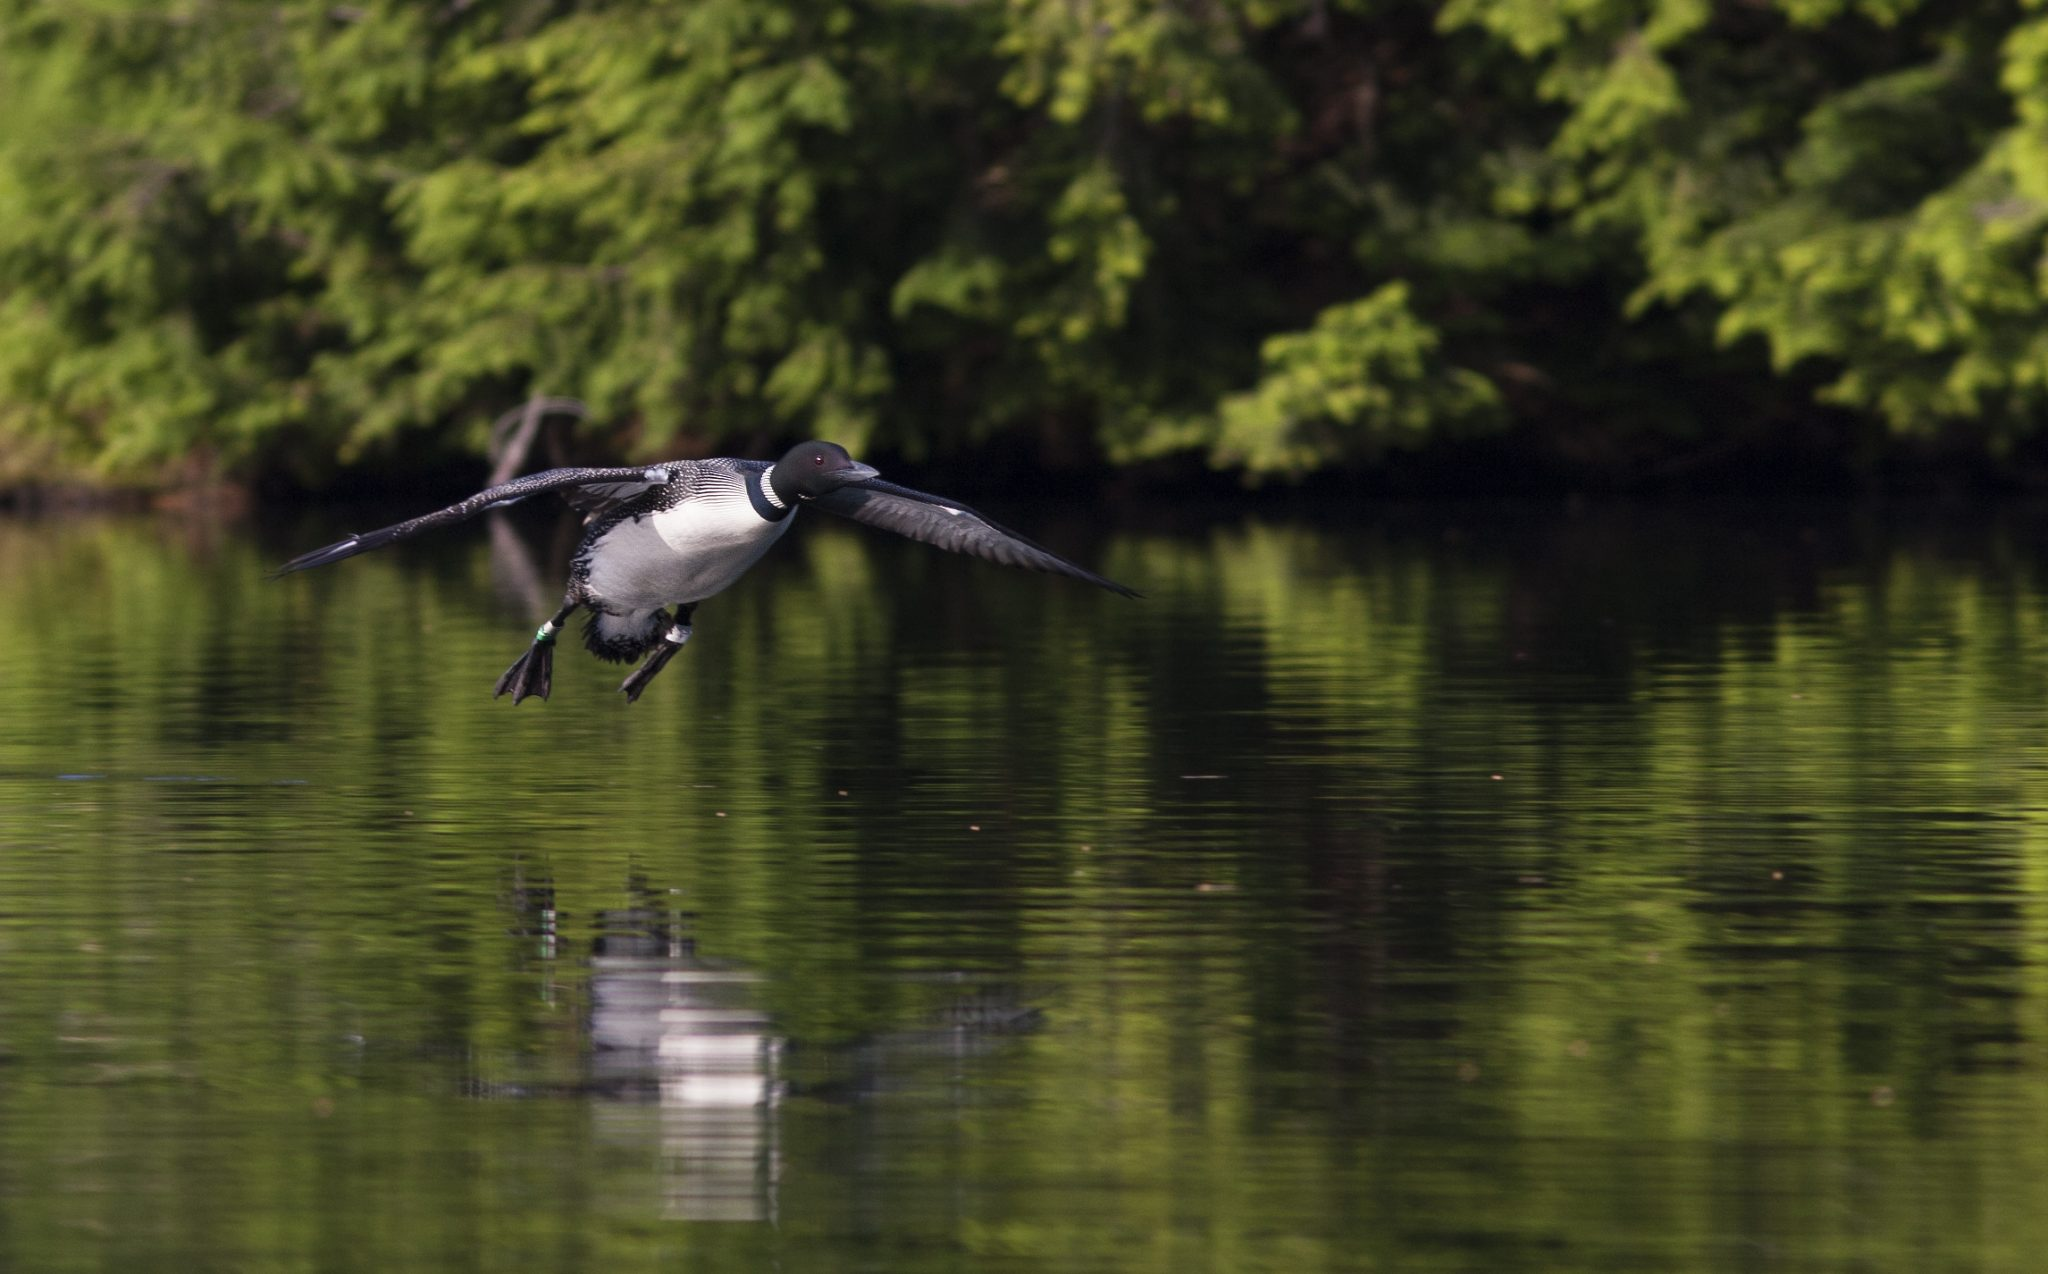 A black and white loon takes flight from a calm body of water.